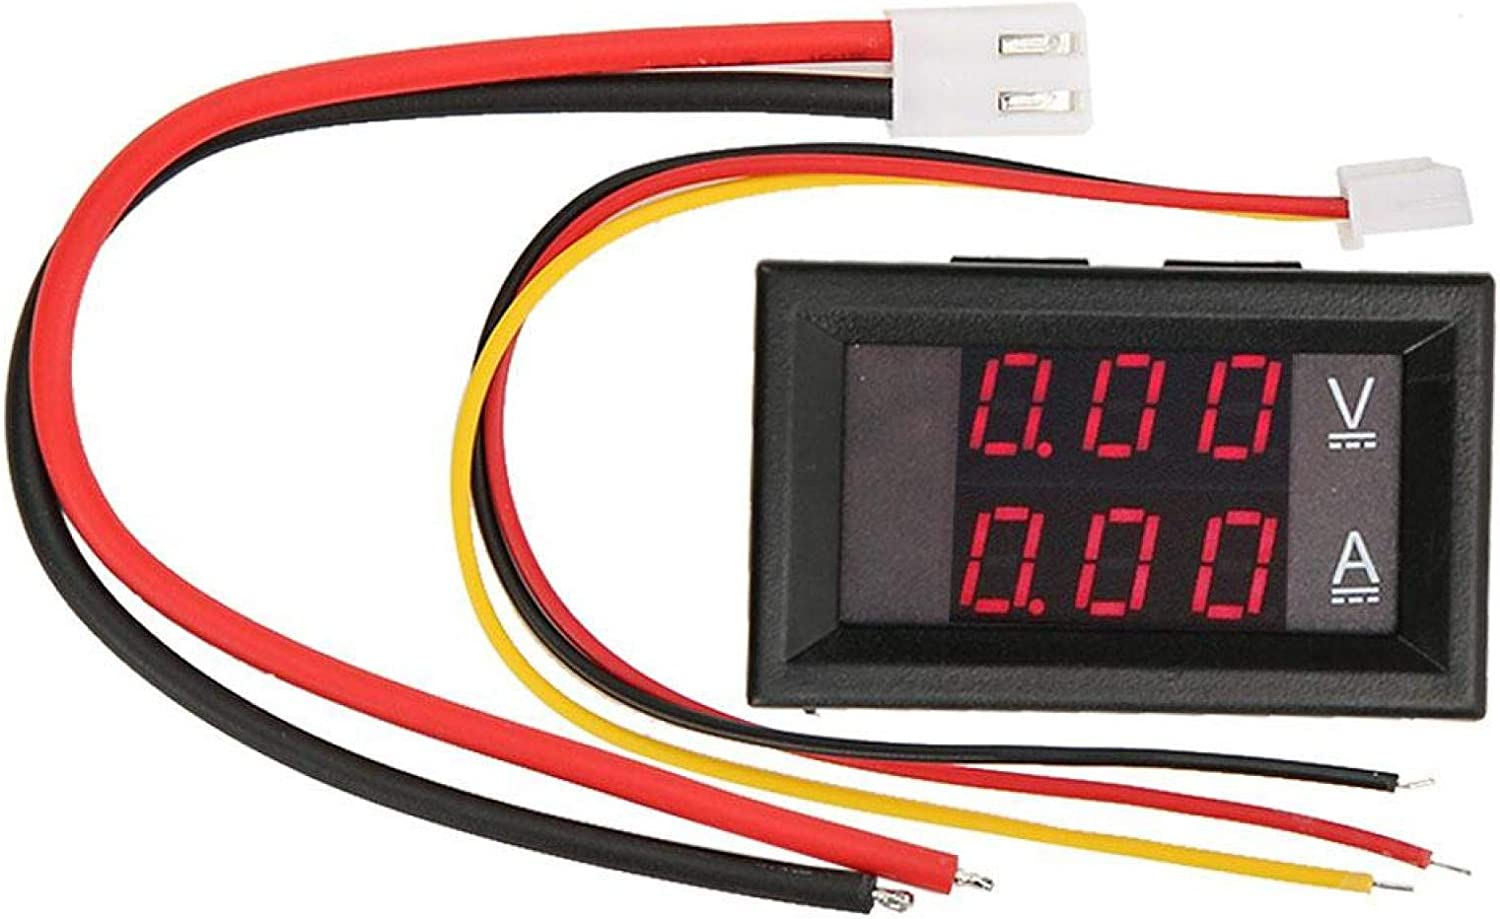 Aoutecen Voltage Current Meter Dual D for unisex DC100V Battery Max 80% OFF Display